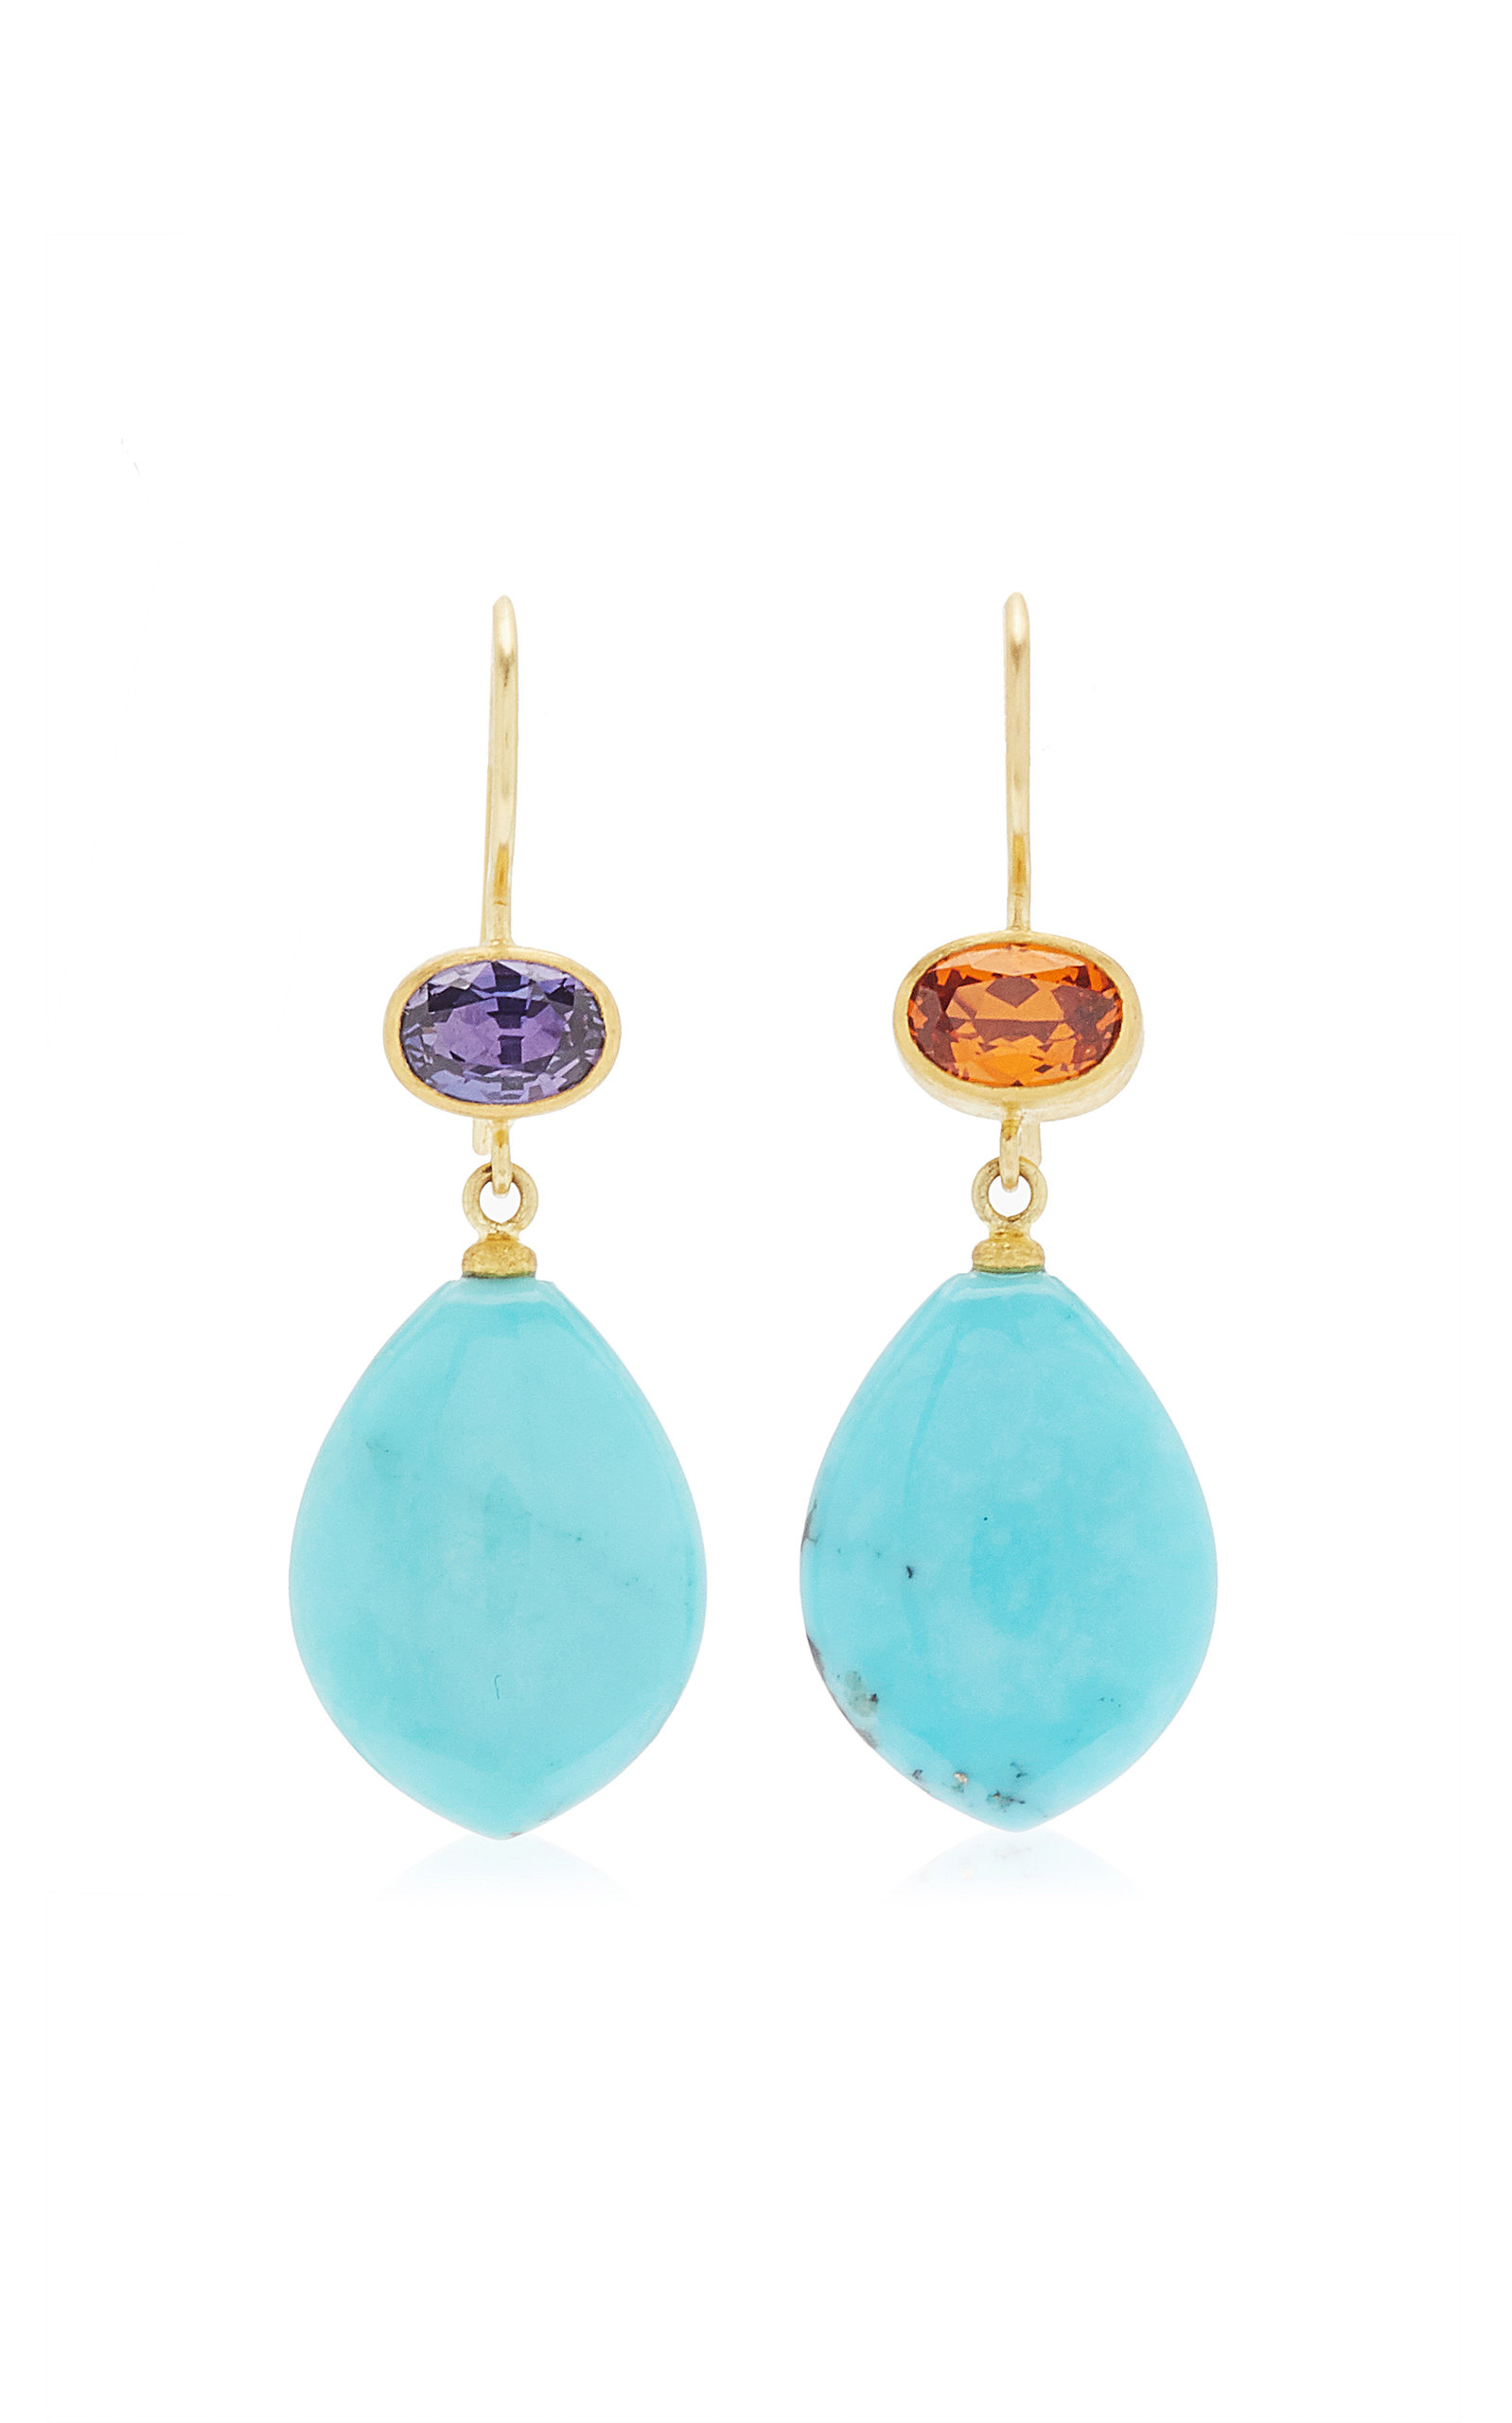 Women's Apple and Eve 22K Yellow Gold Multi-Stone Earrings